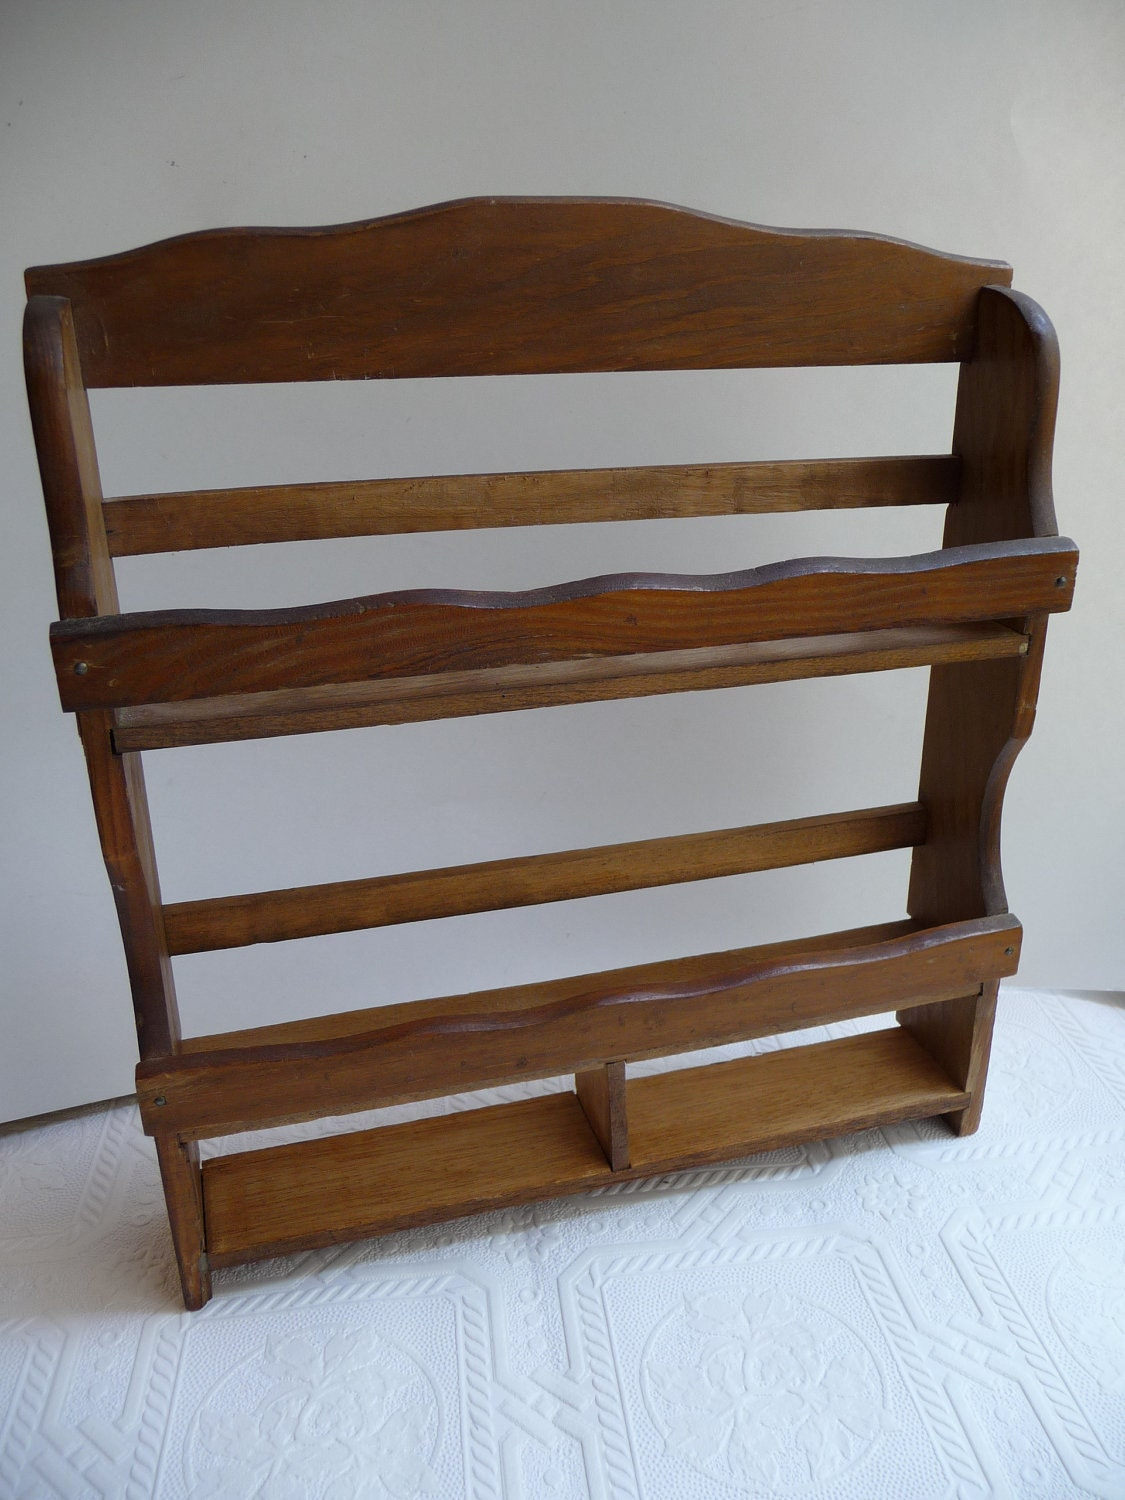 Spice rack vintage wooden by